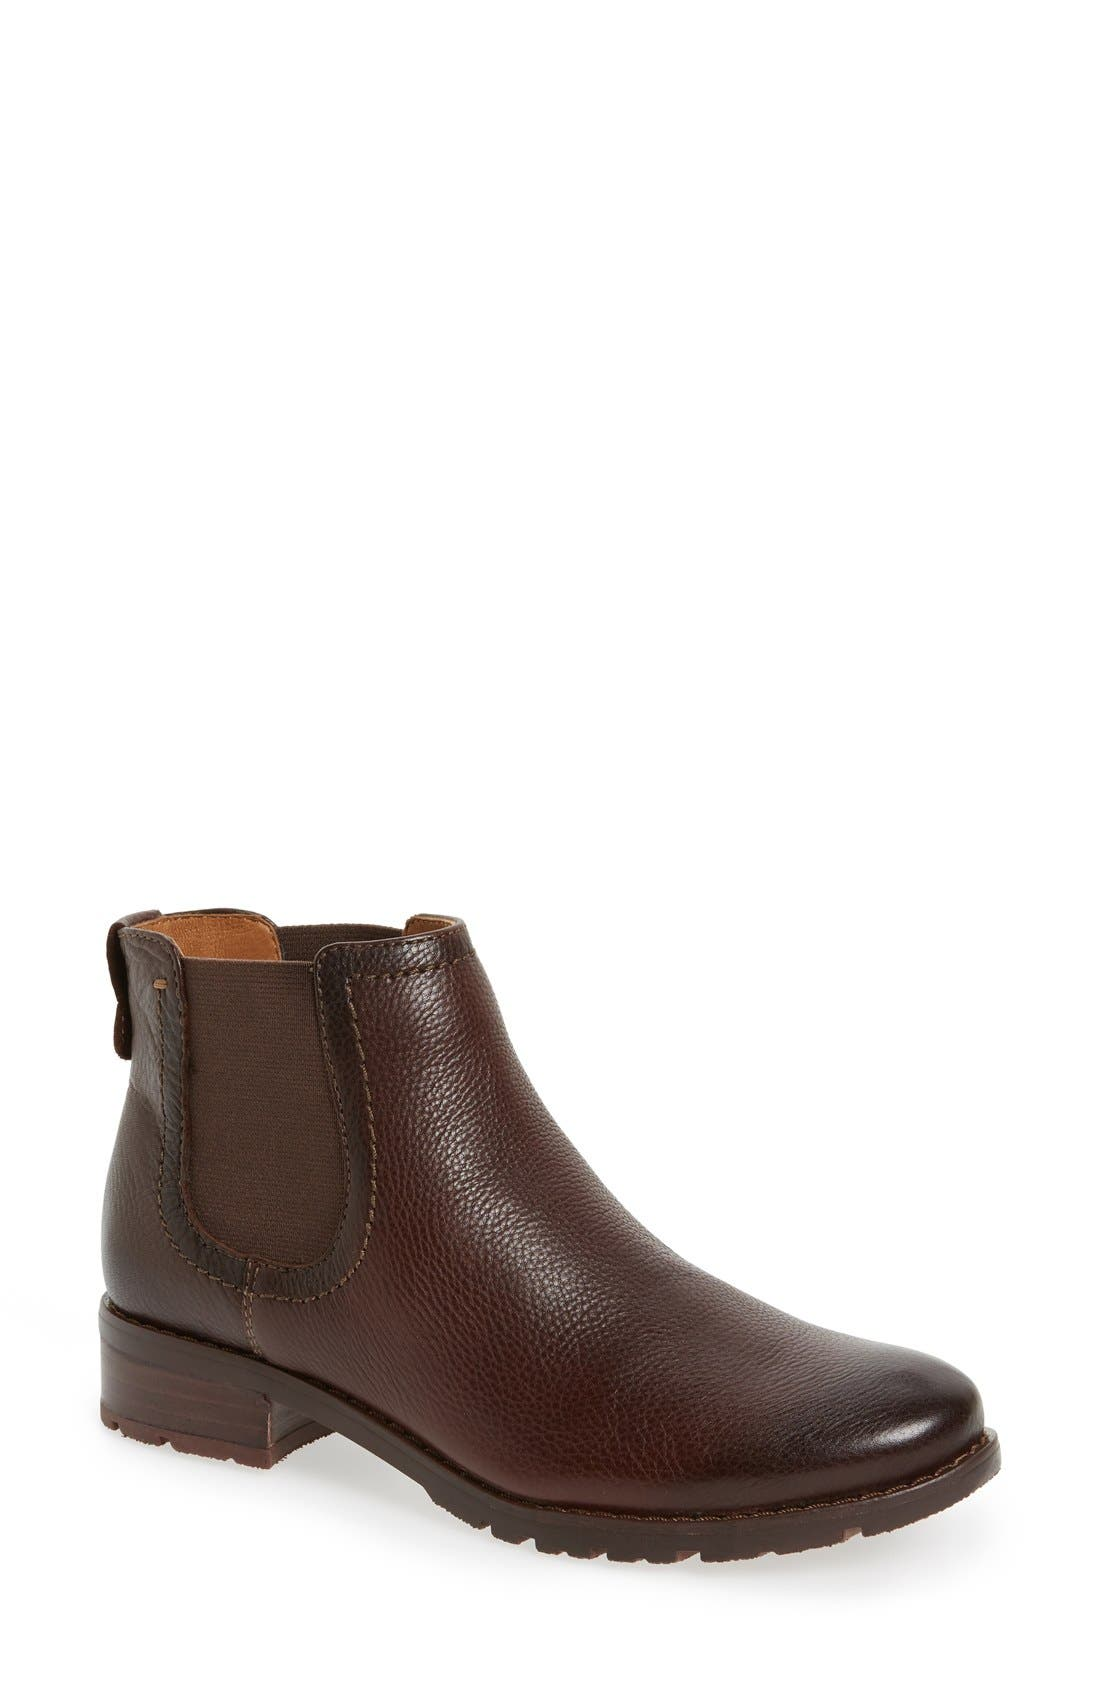 'Selby' Chelsea Bootie,                             Main thumbnail 7, color,